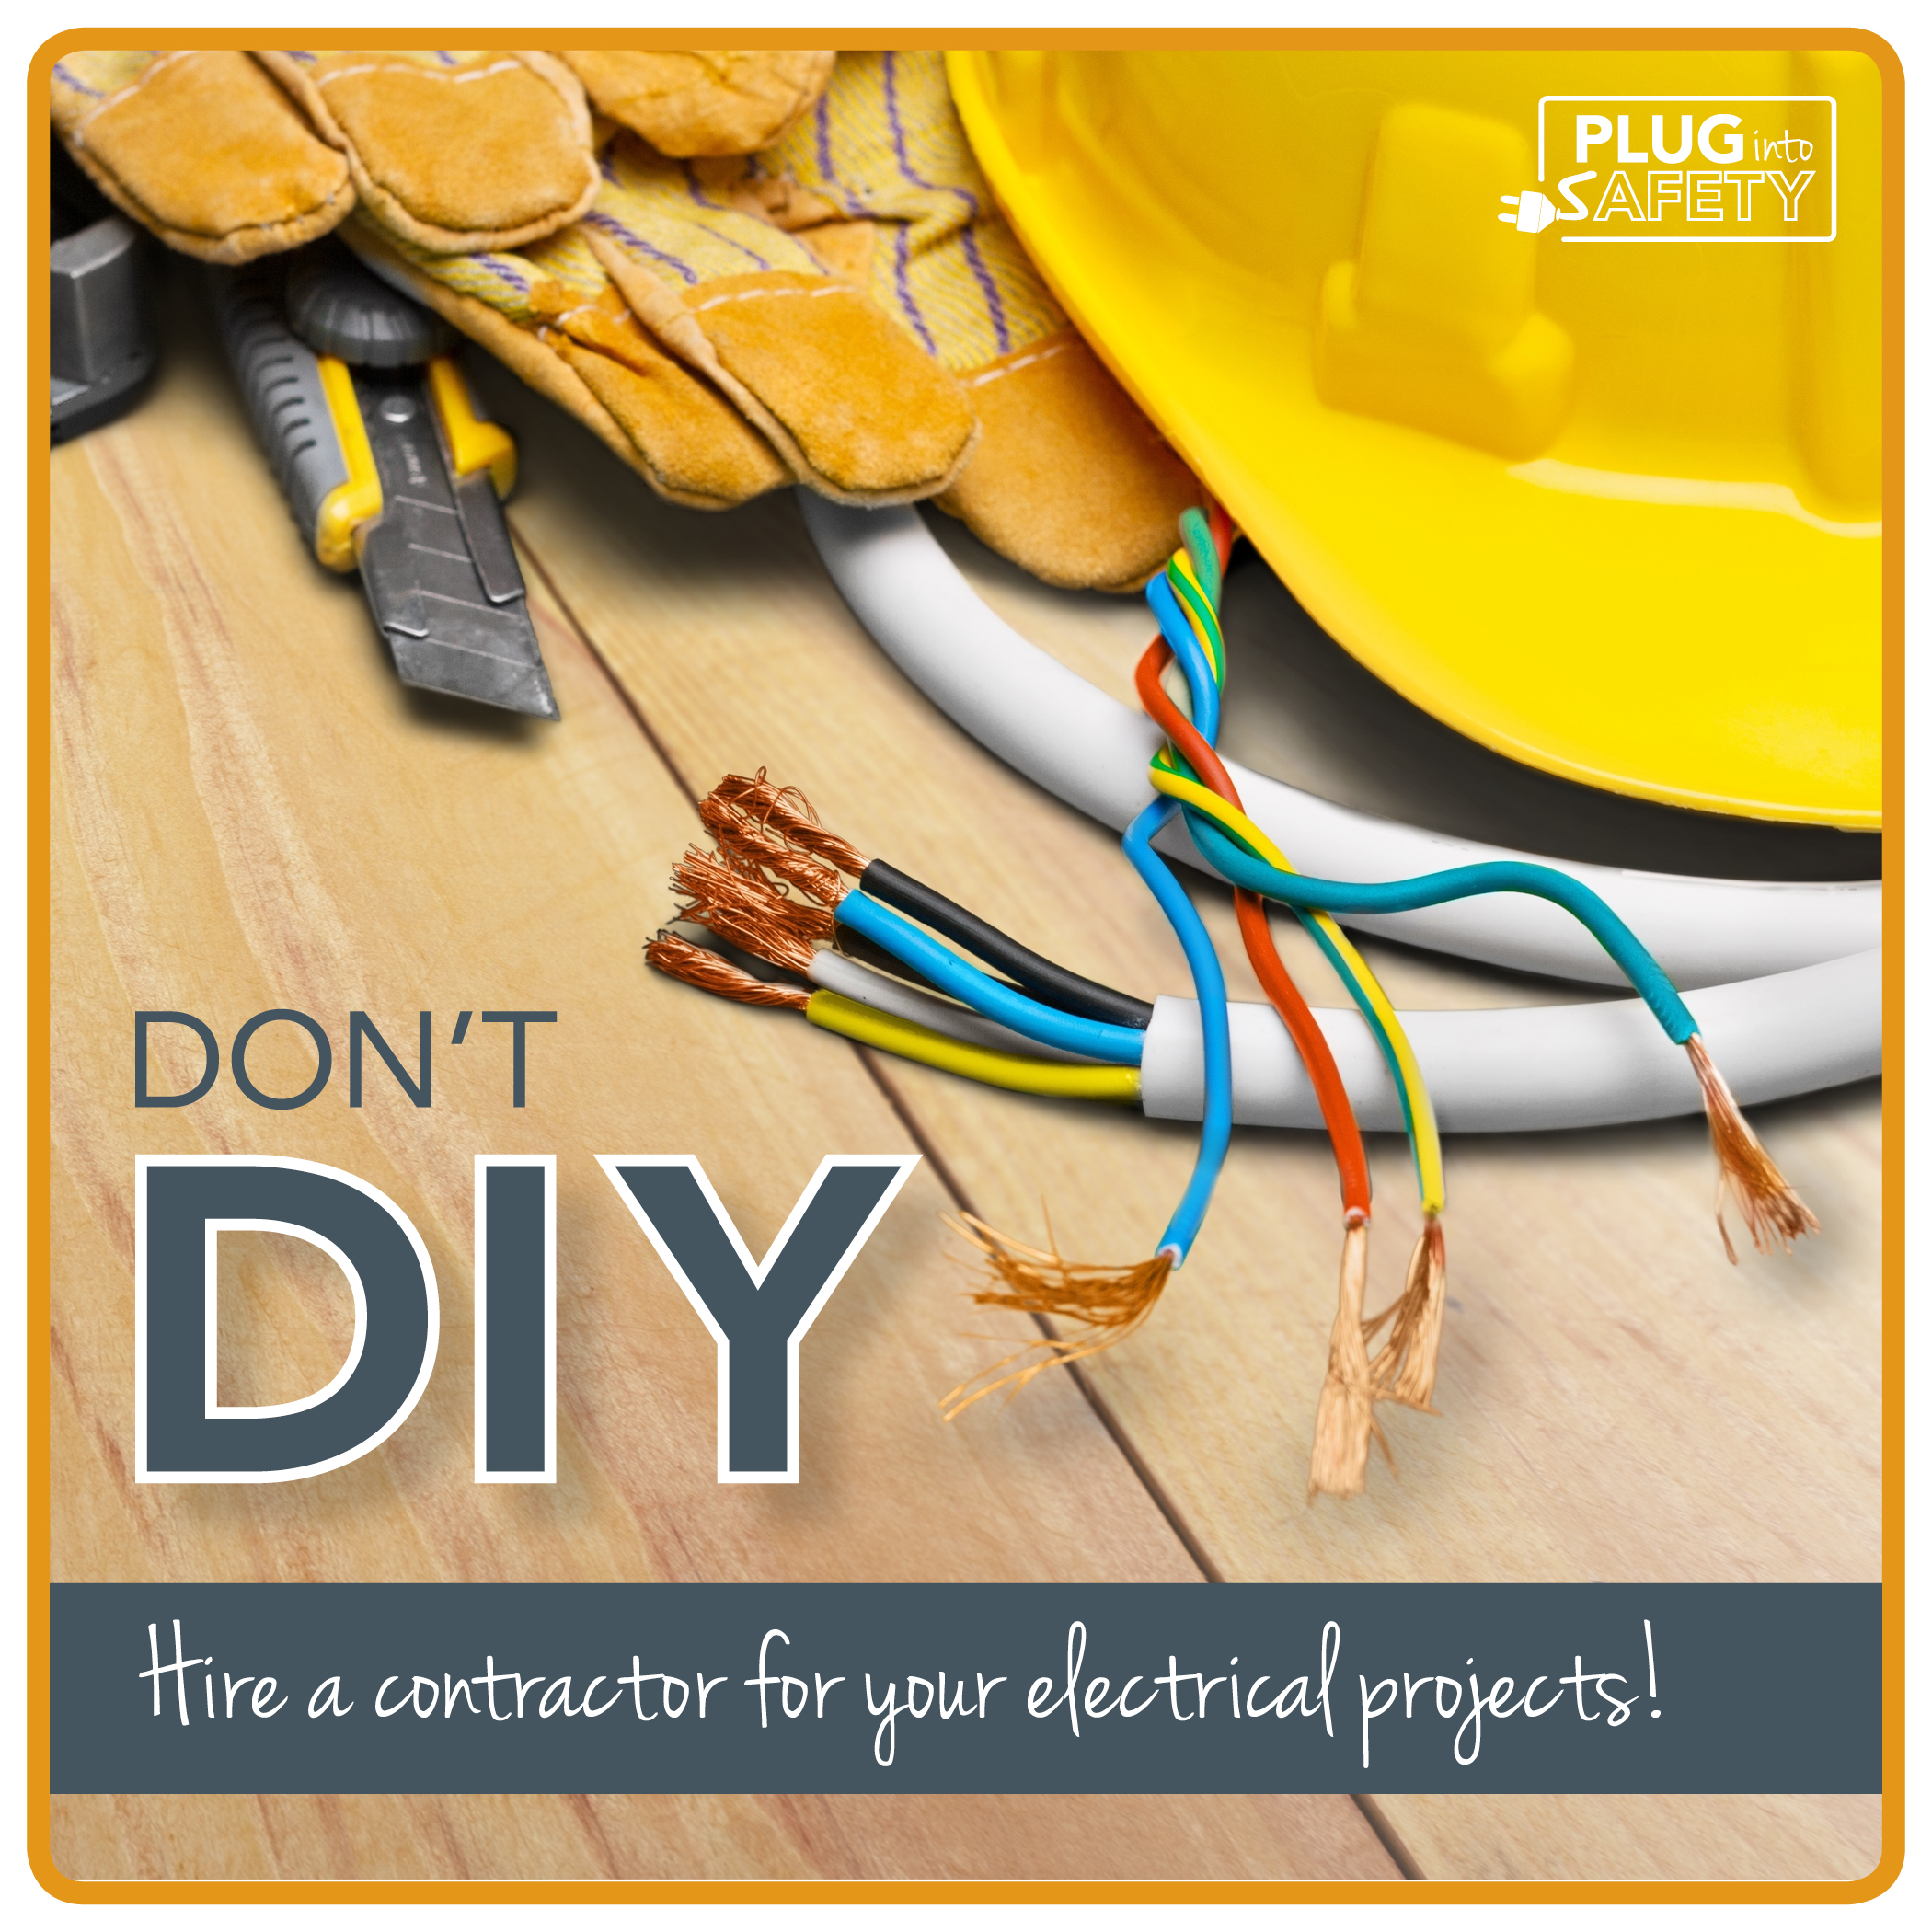 Don't D.I.Y. electrical jobs.